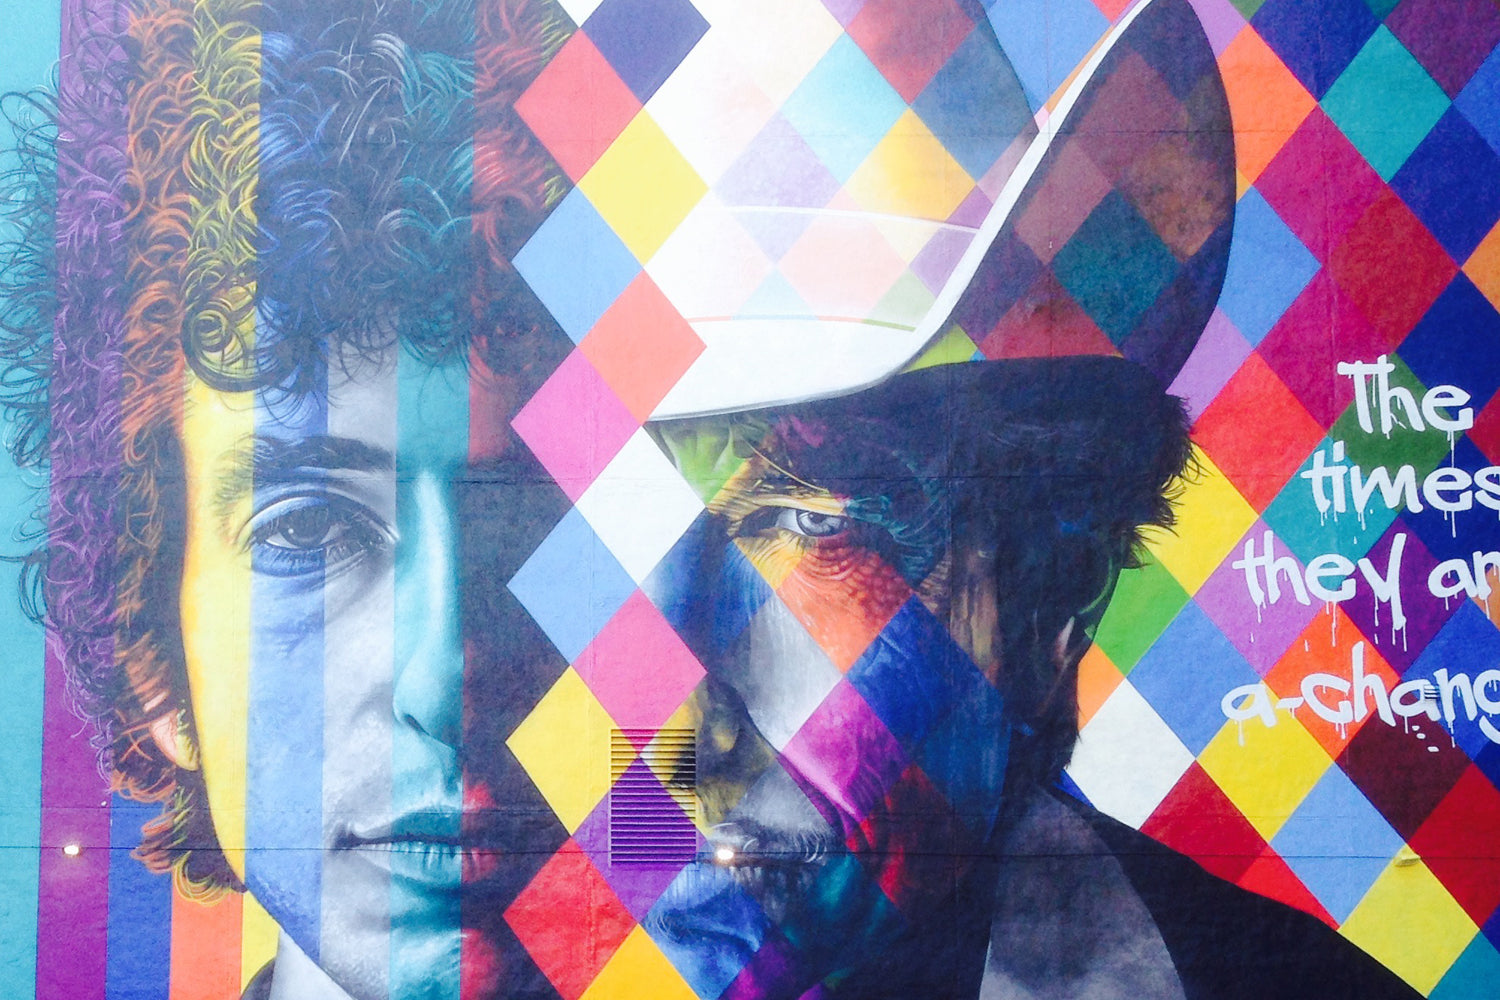 Hi Bob! Kobra Puts the finishing touches on his Dylan homage